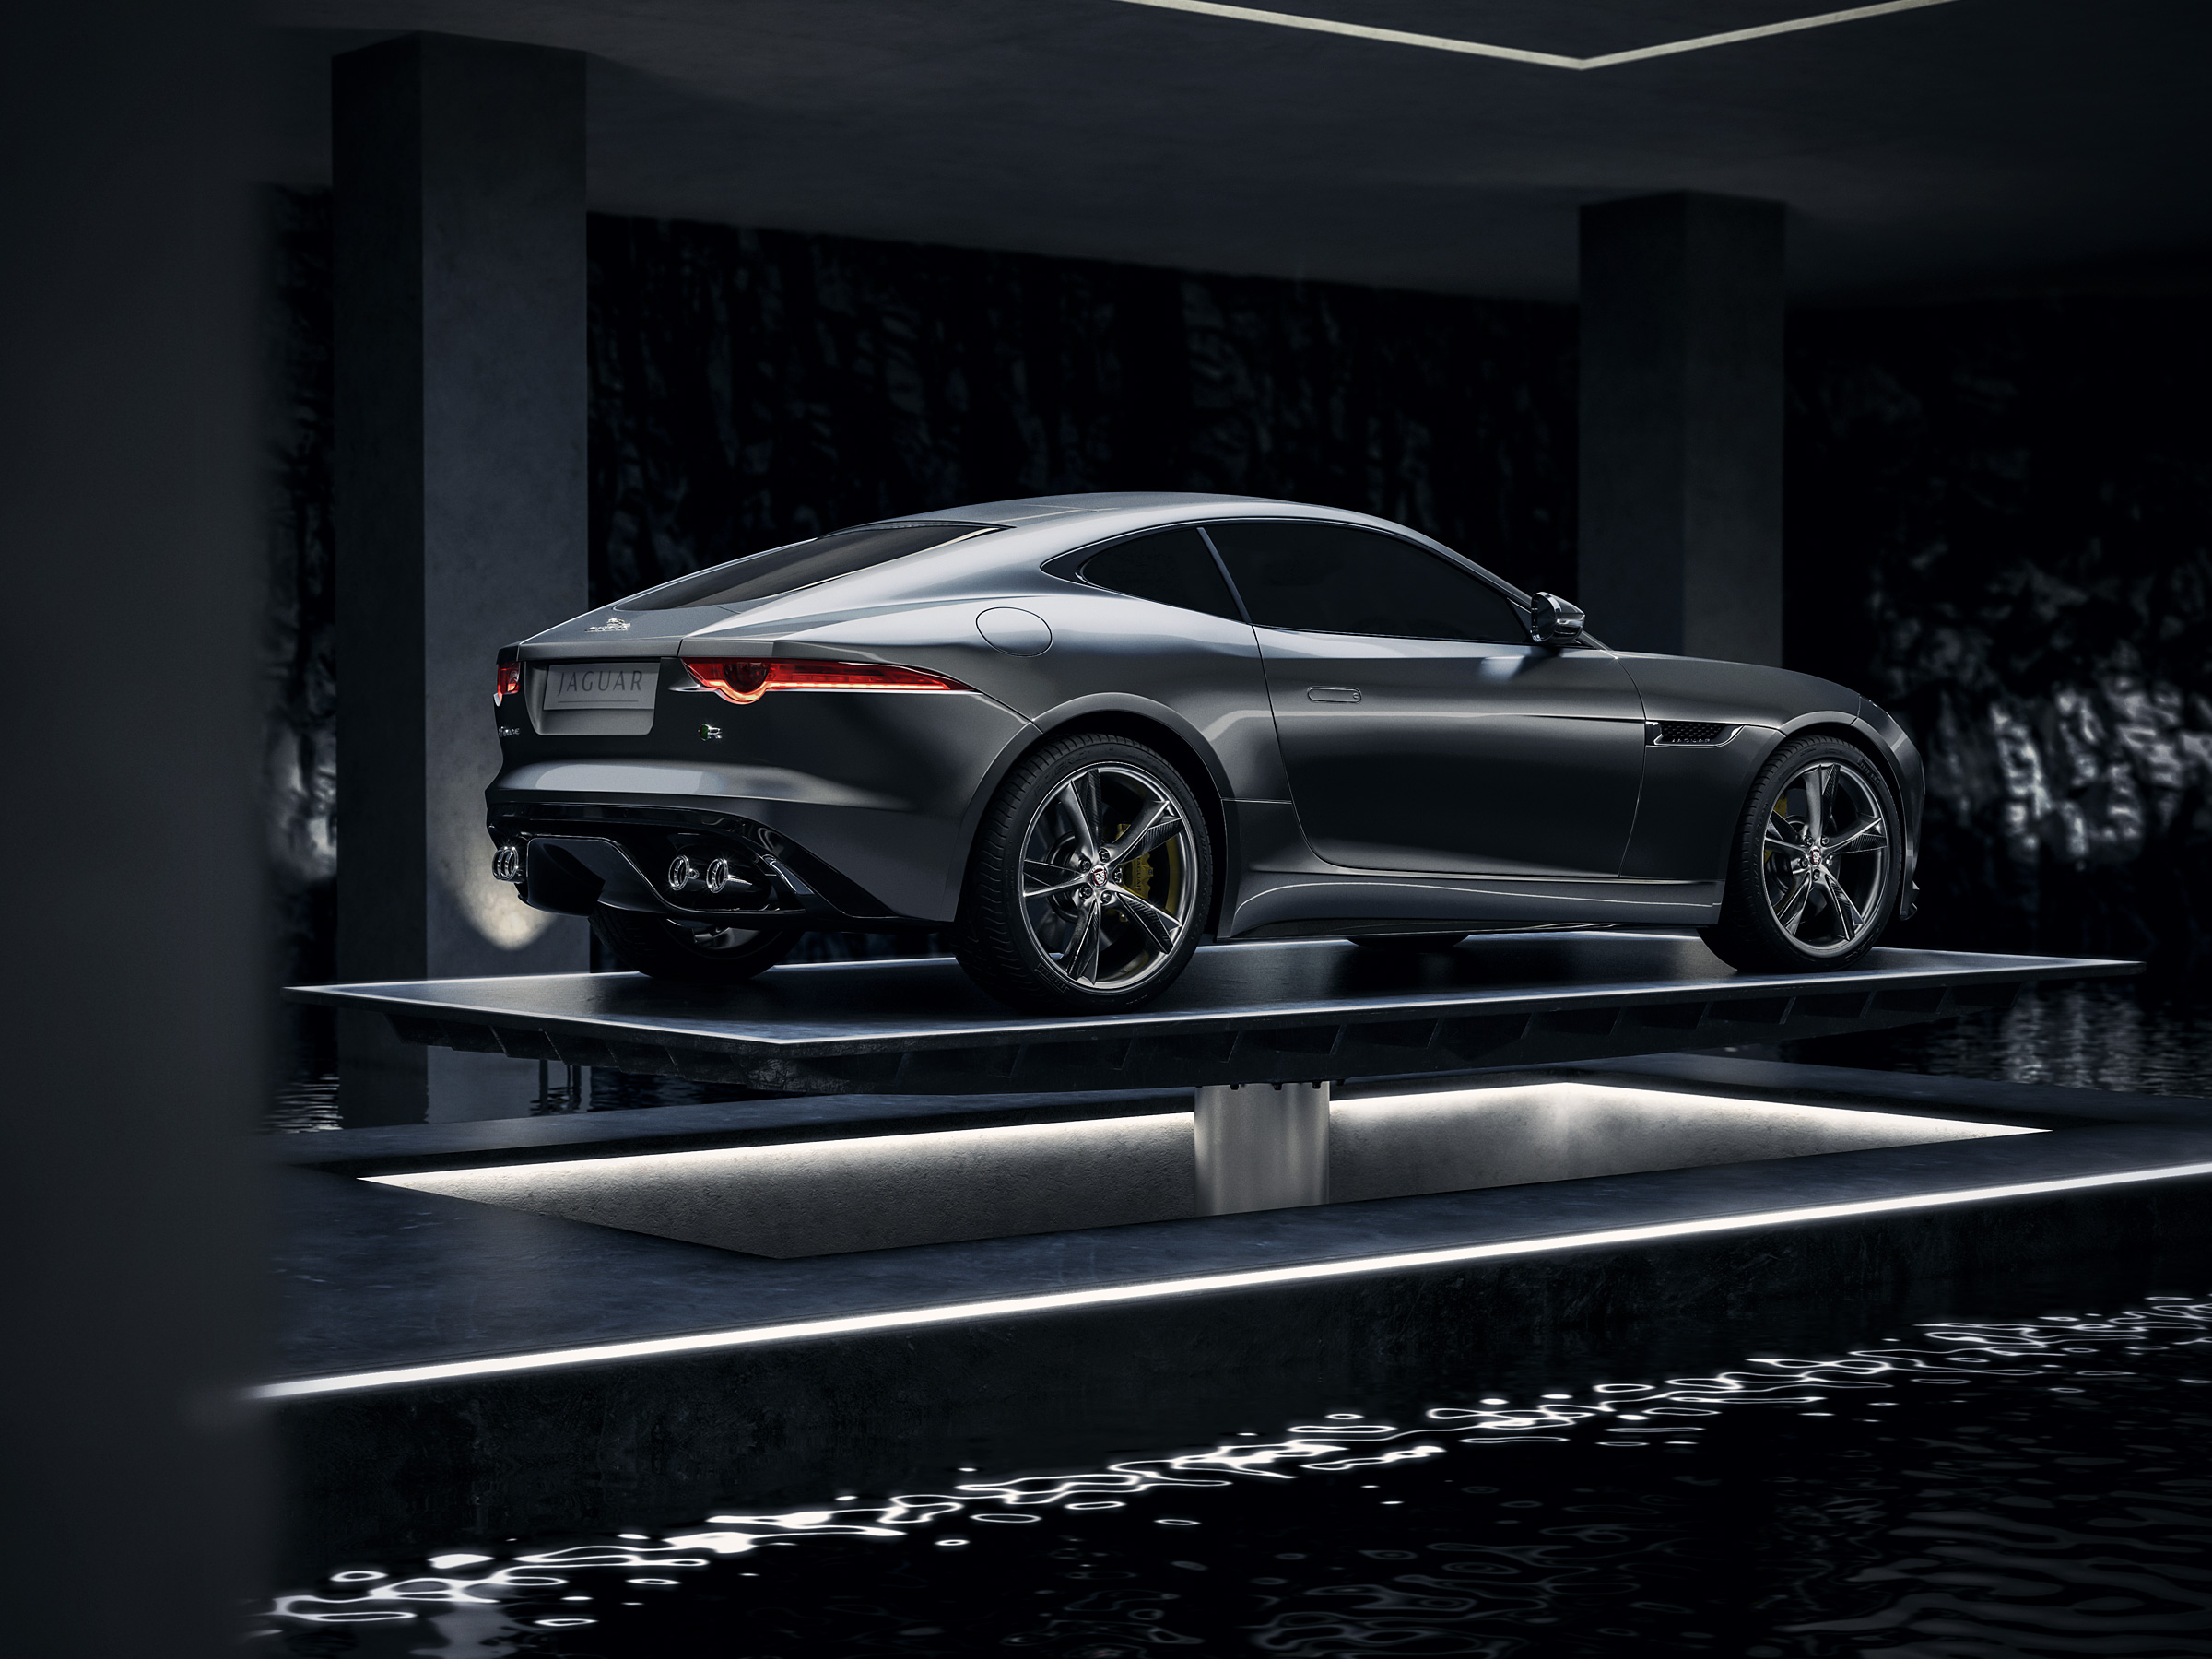 jaguar_ftype_f_type_tank_cgi_retouch_london_post_production_underground_lair_garage_side